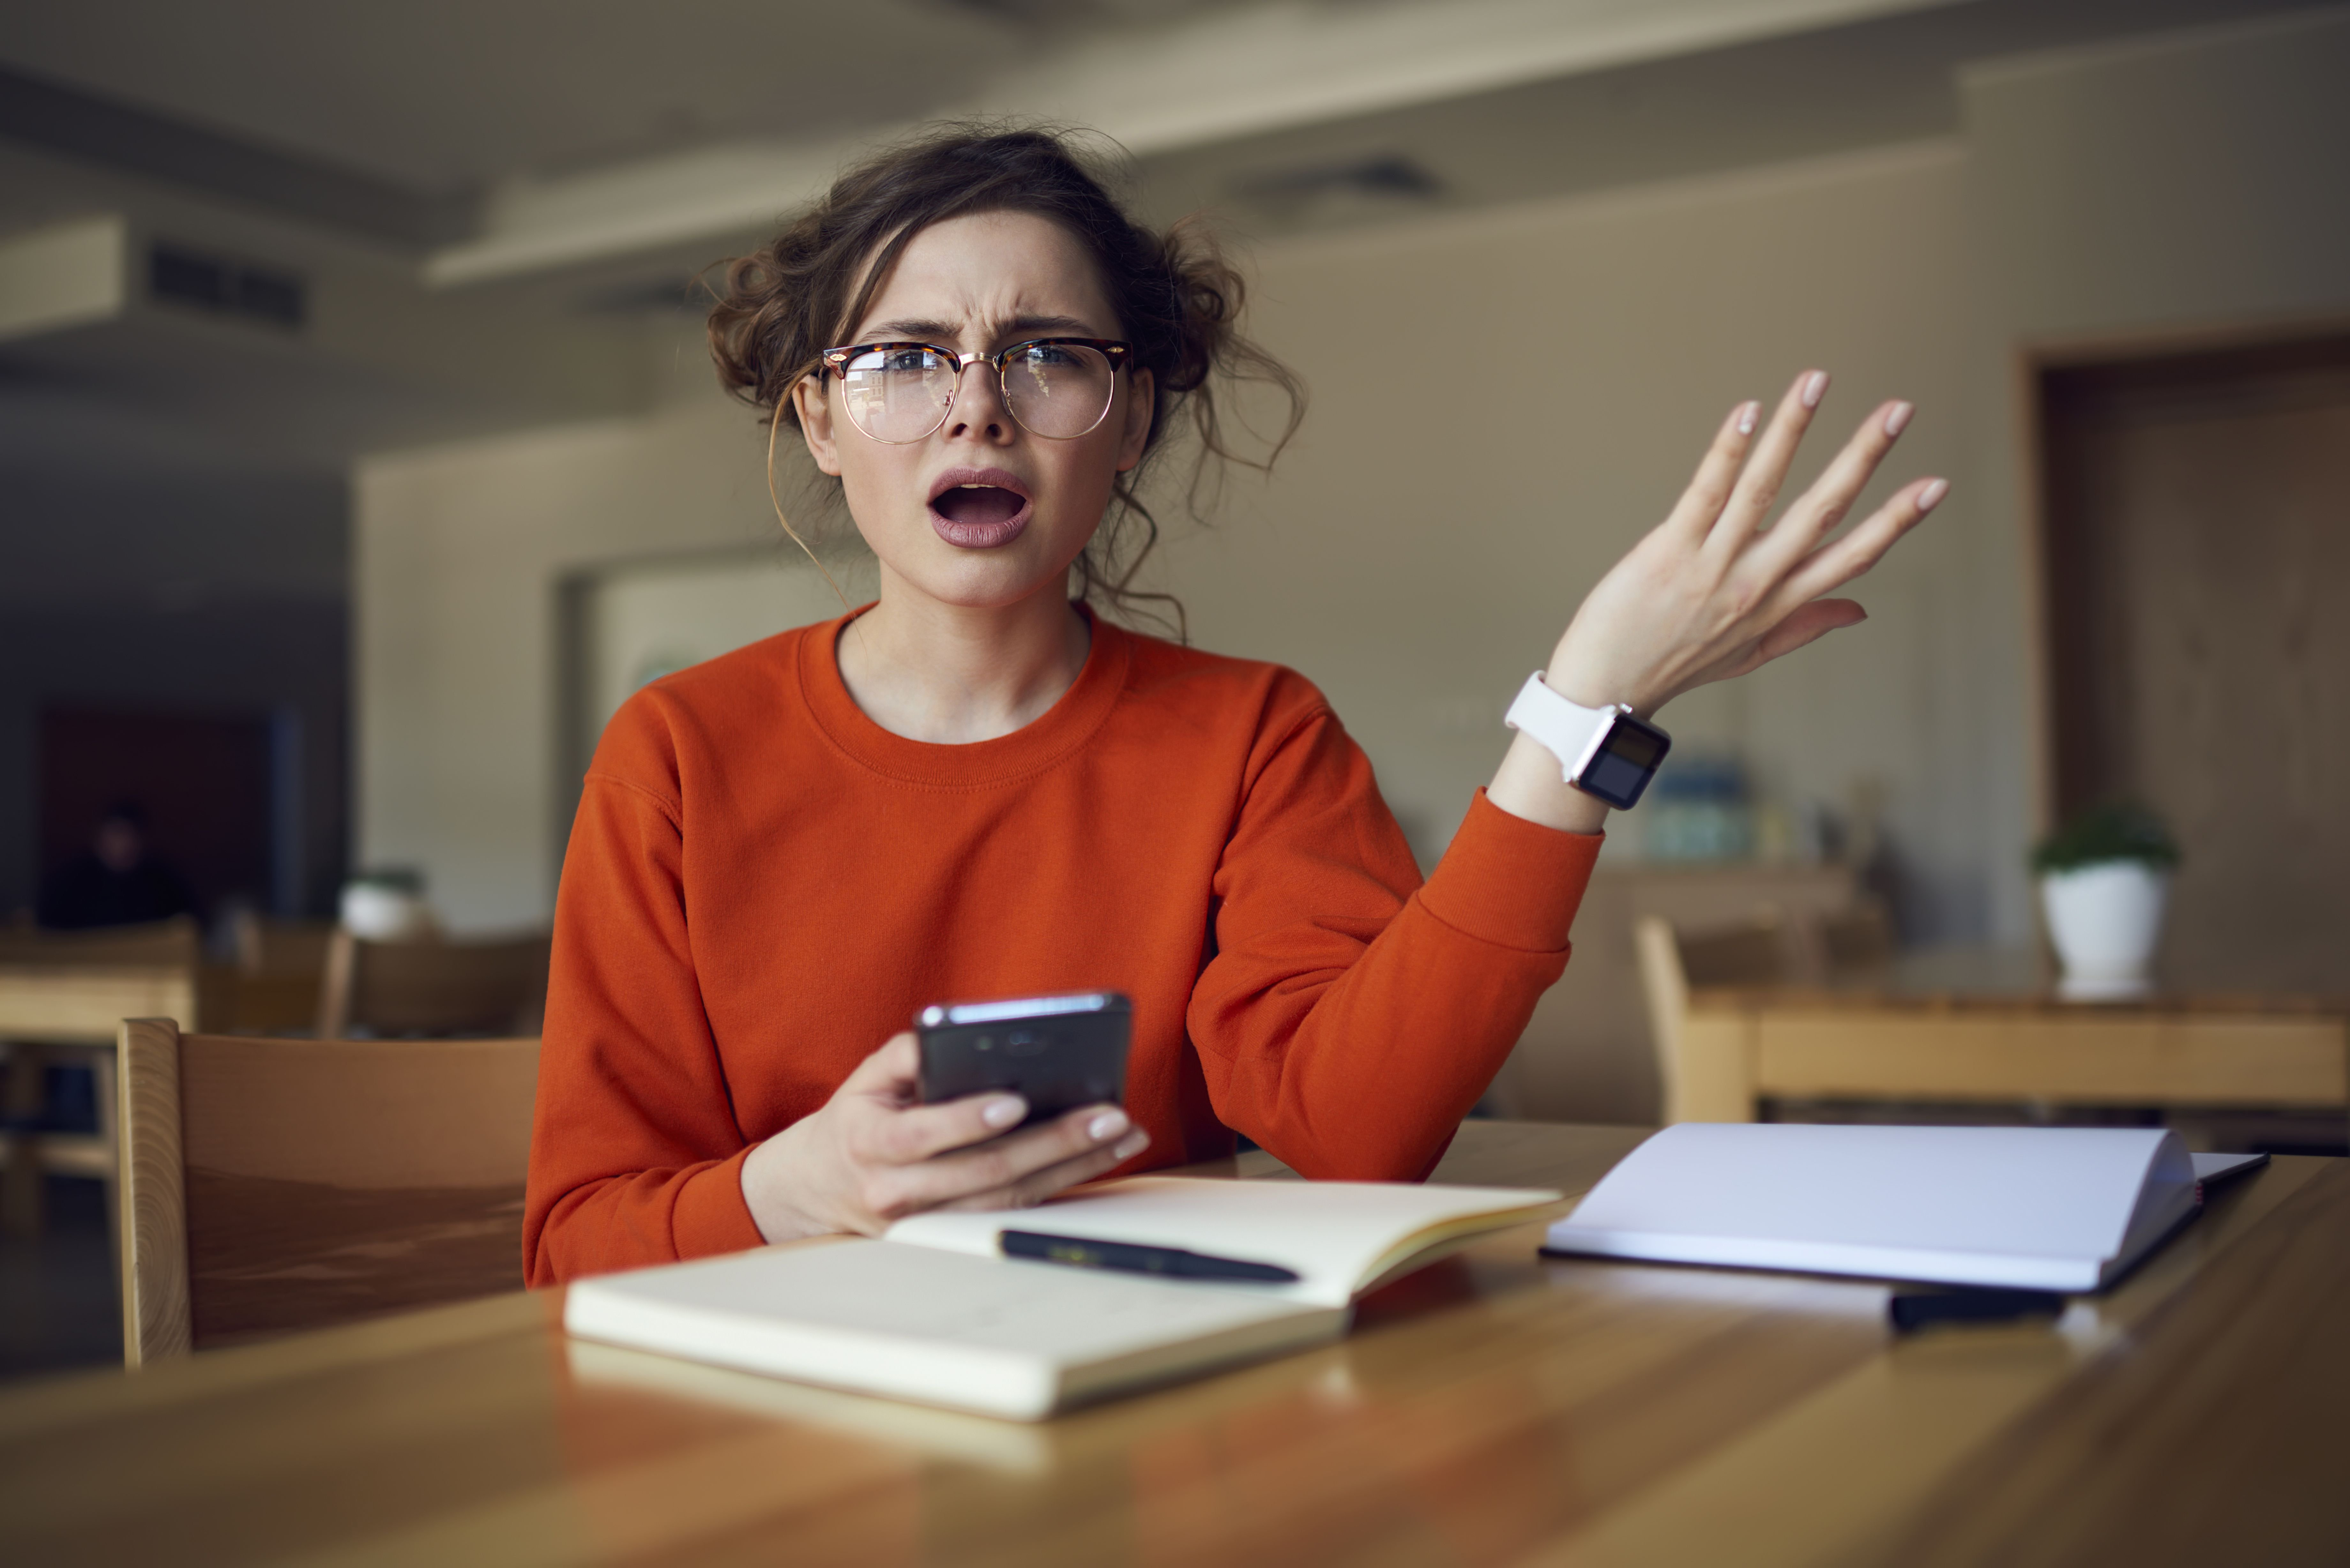 A woman looks upset while reading her phone.   Source: Shutterstock